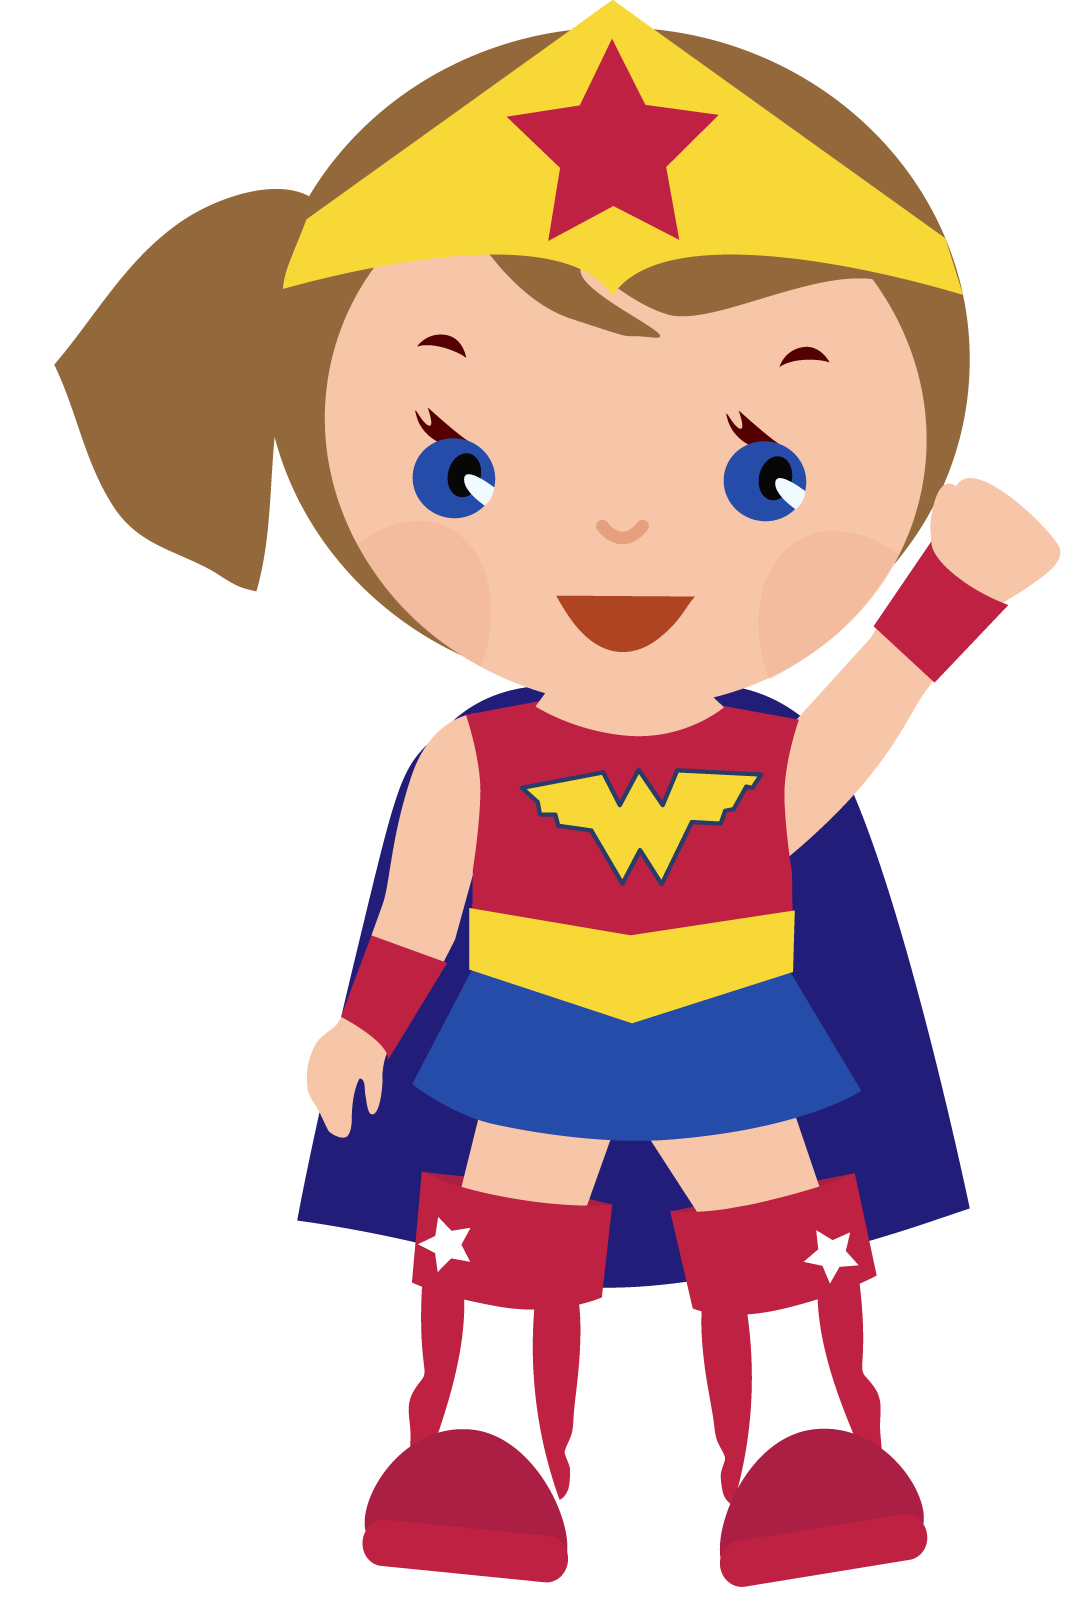 Superhero girl super hero. Yearbook clipart cartoon